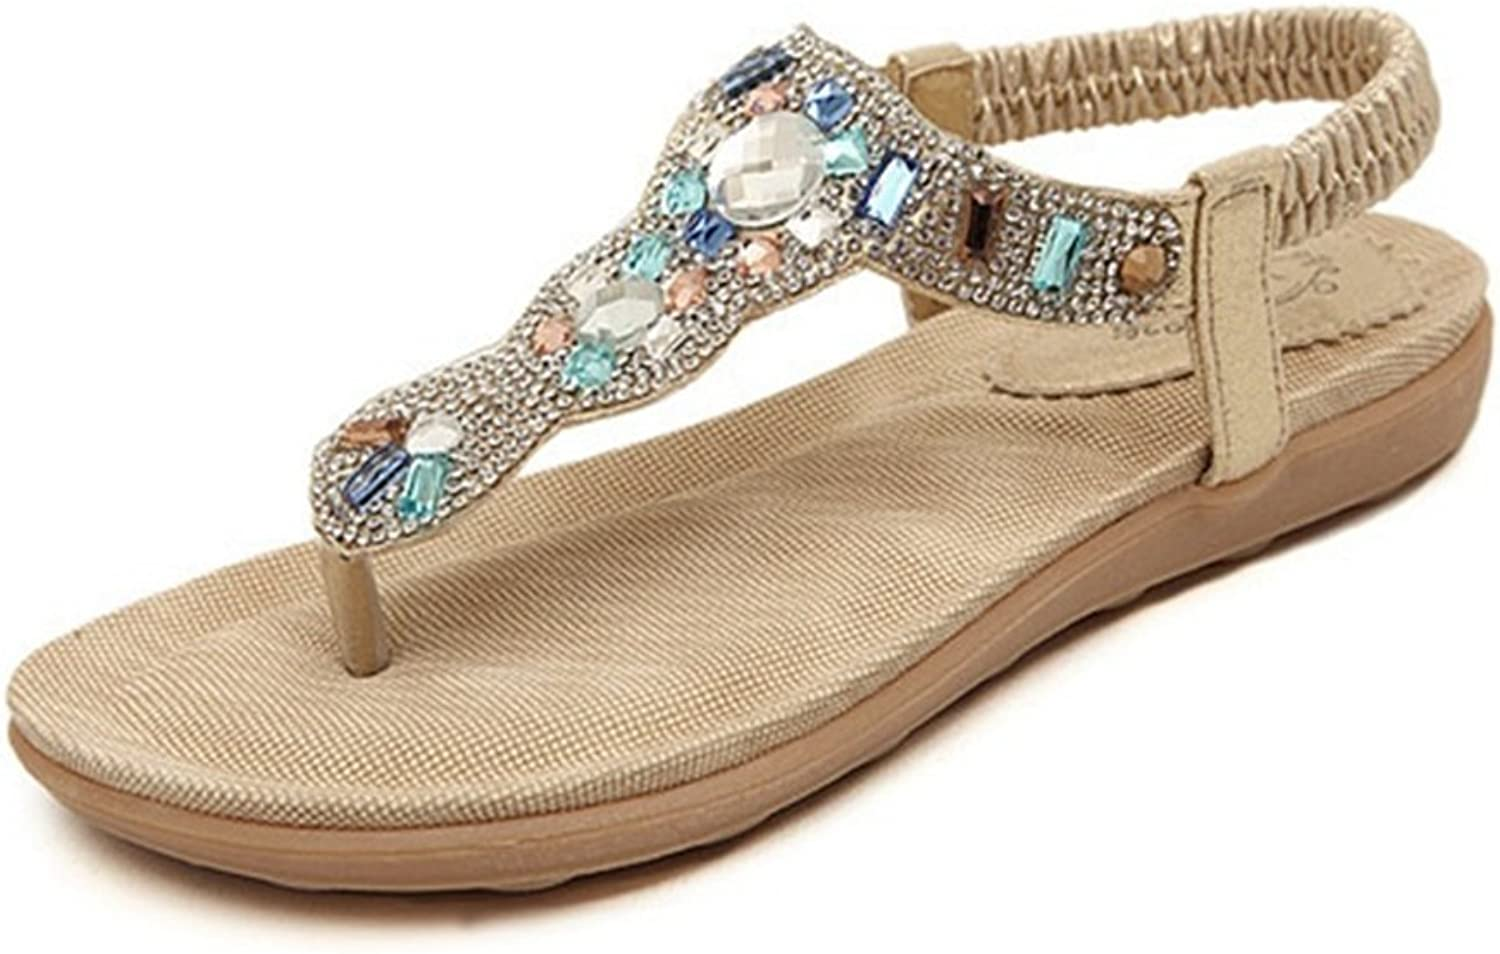 CYBLING Fashion Slip On Bohemian Flats Sandals for Women Beach Strap shoes with Rhinestones